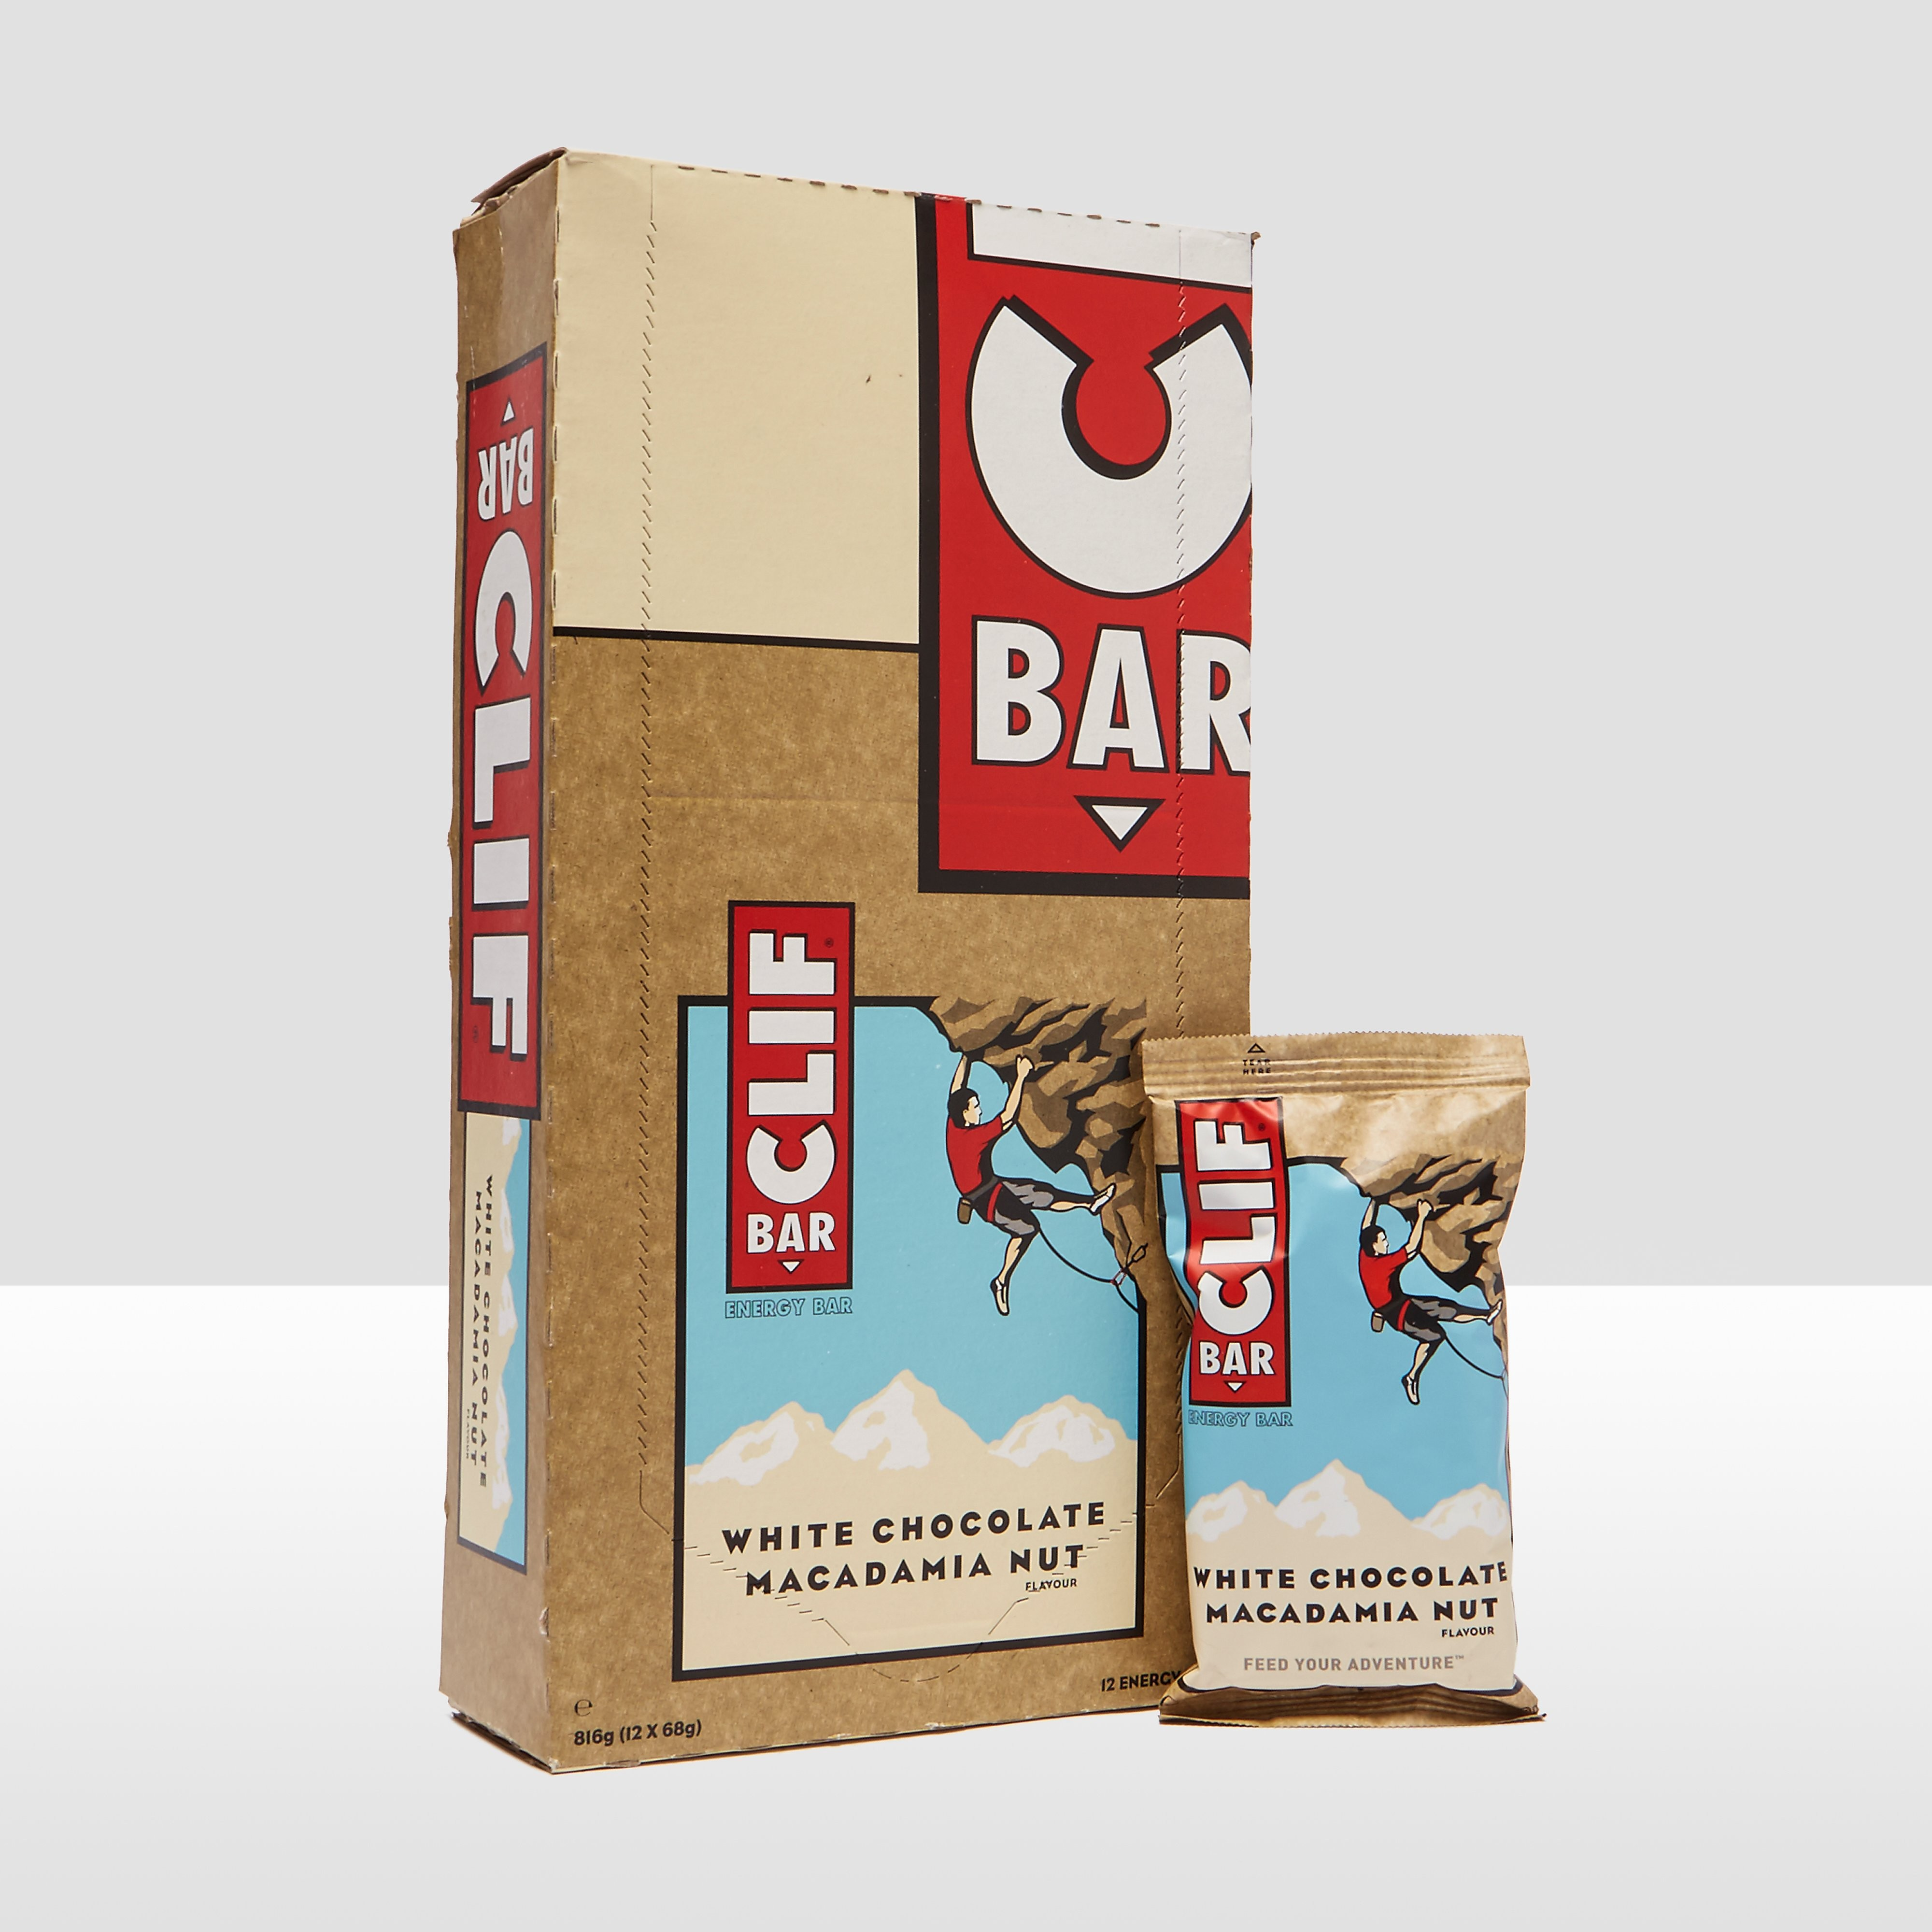 Clif CLIF BAR (12 PACK)- White Chocolate Macadamia Nut